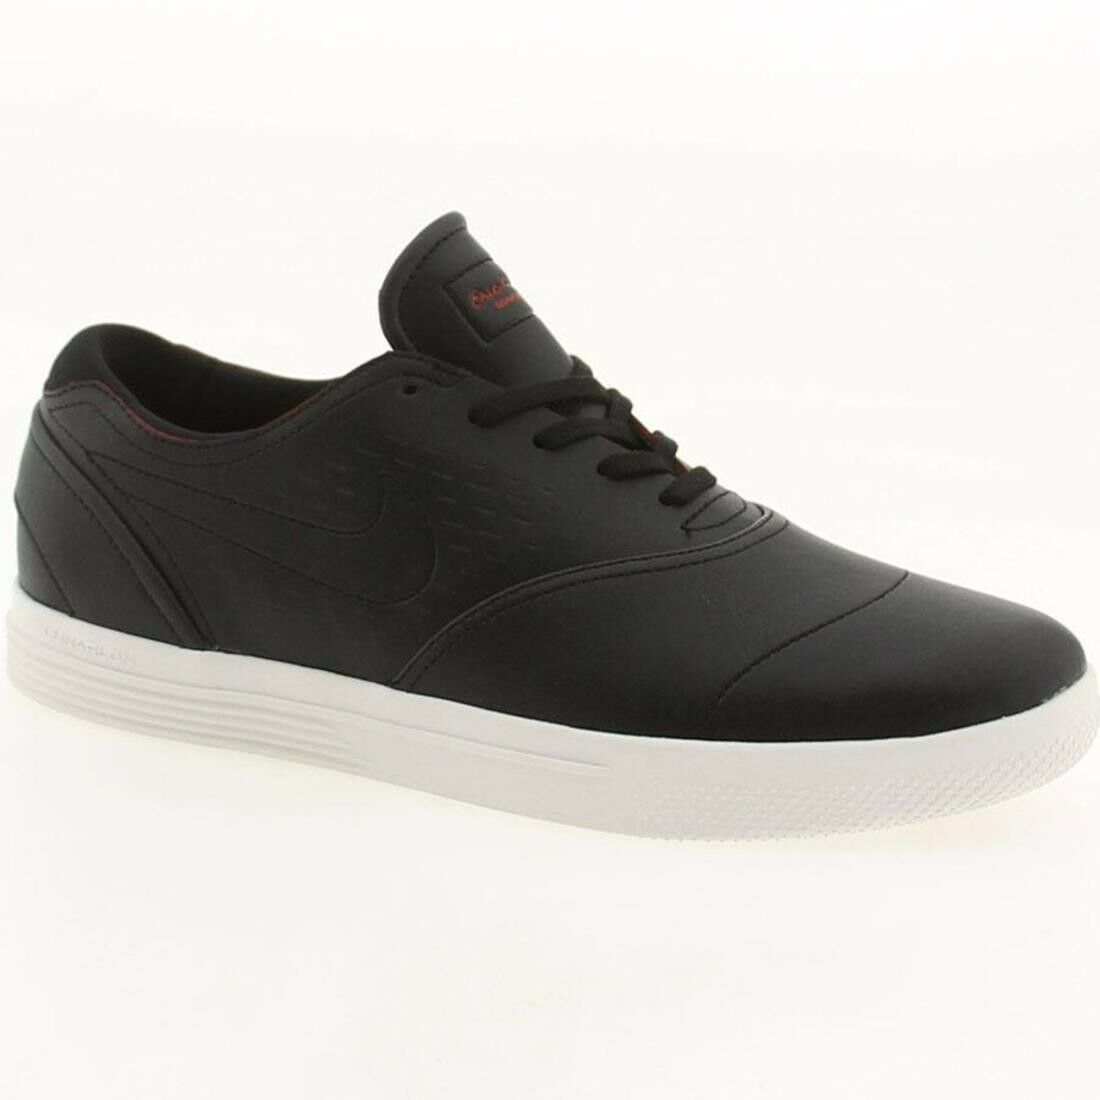 598637-006 Hommes Nike Eric Koston 2 IT noir Challenge rouge